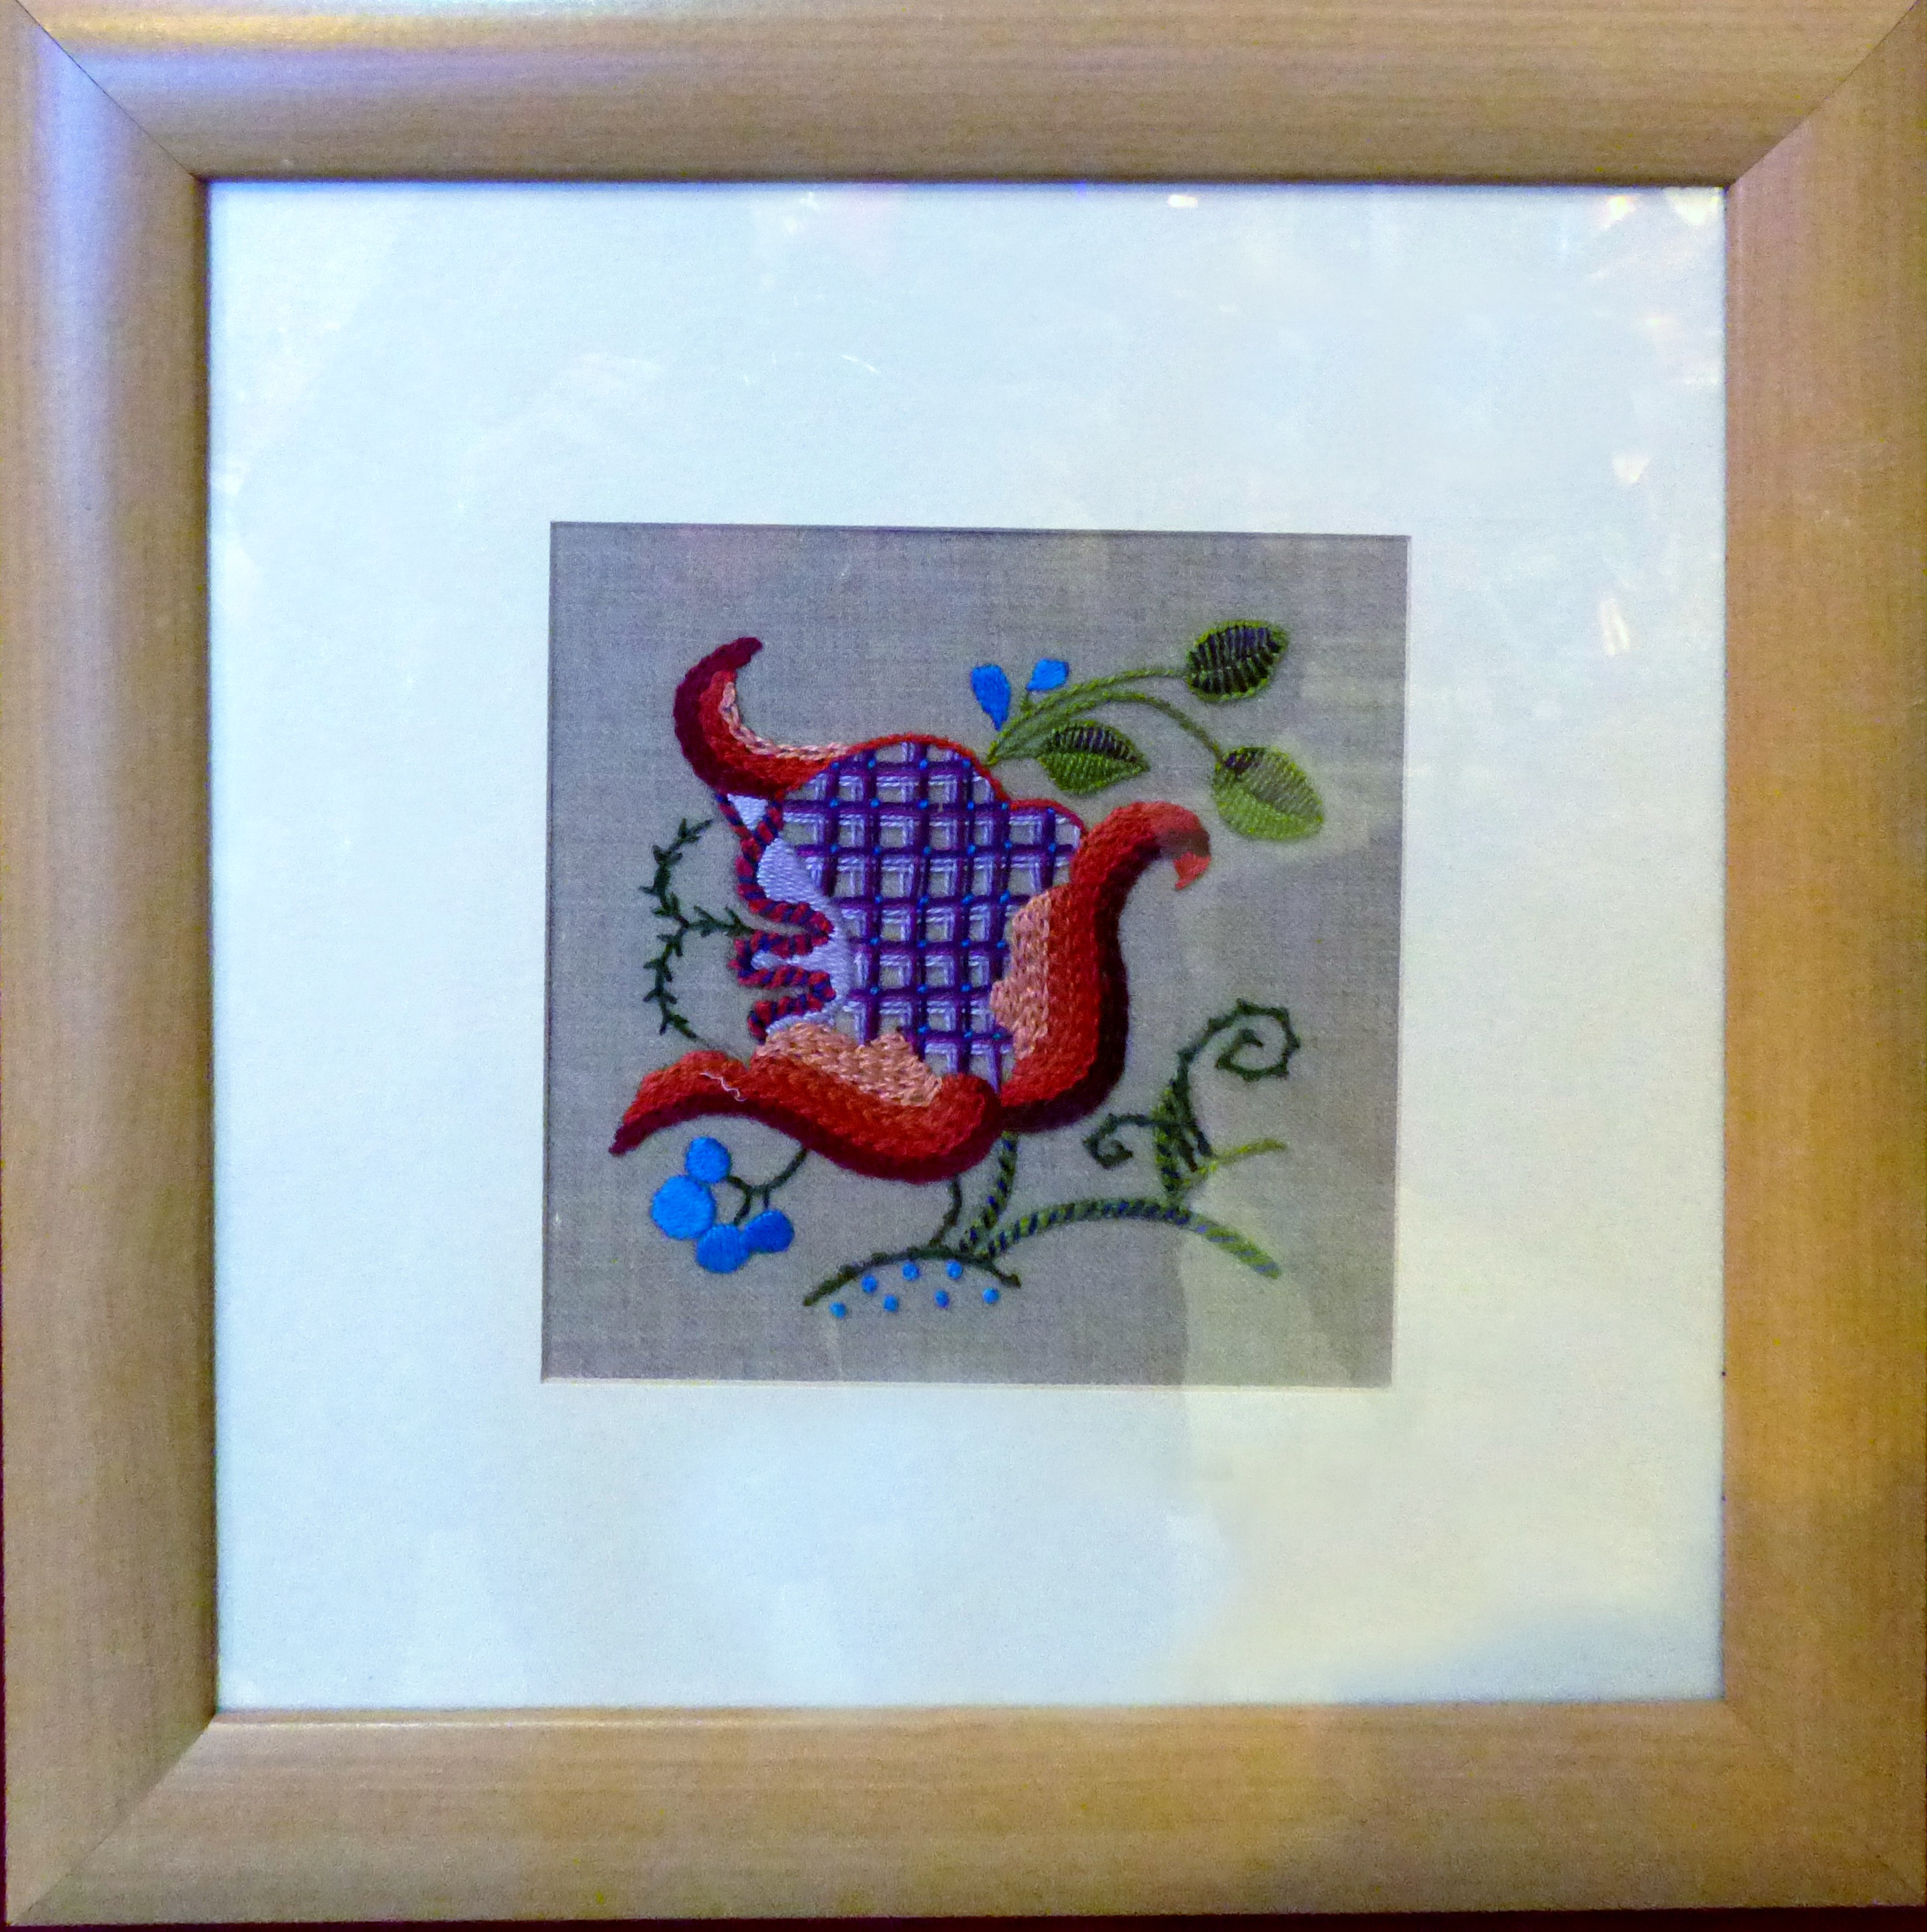 CREWELWORK by H.McCormack, at Embroidery for Pleasure exhibition, Liverpool Metropolitan Cathedral 2016